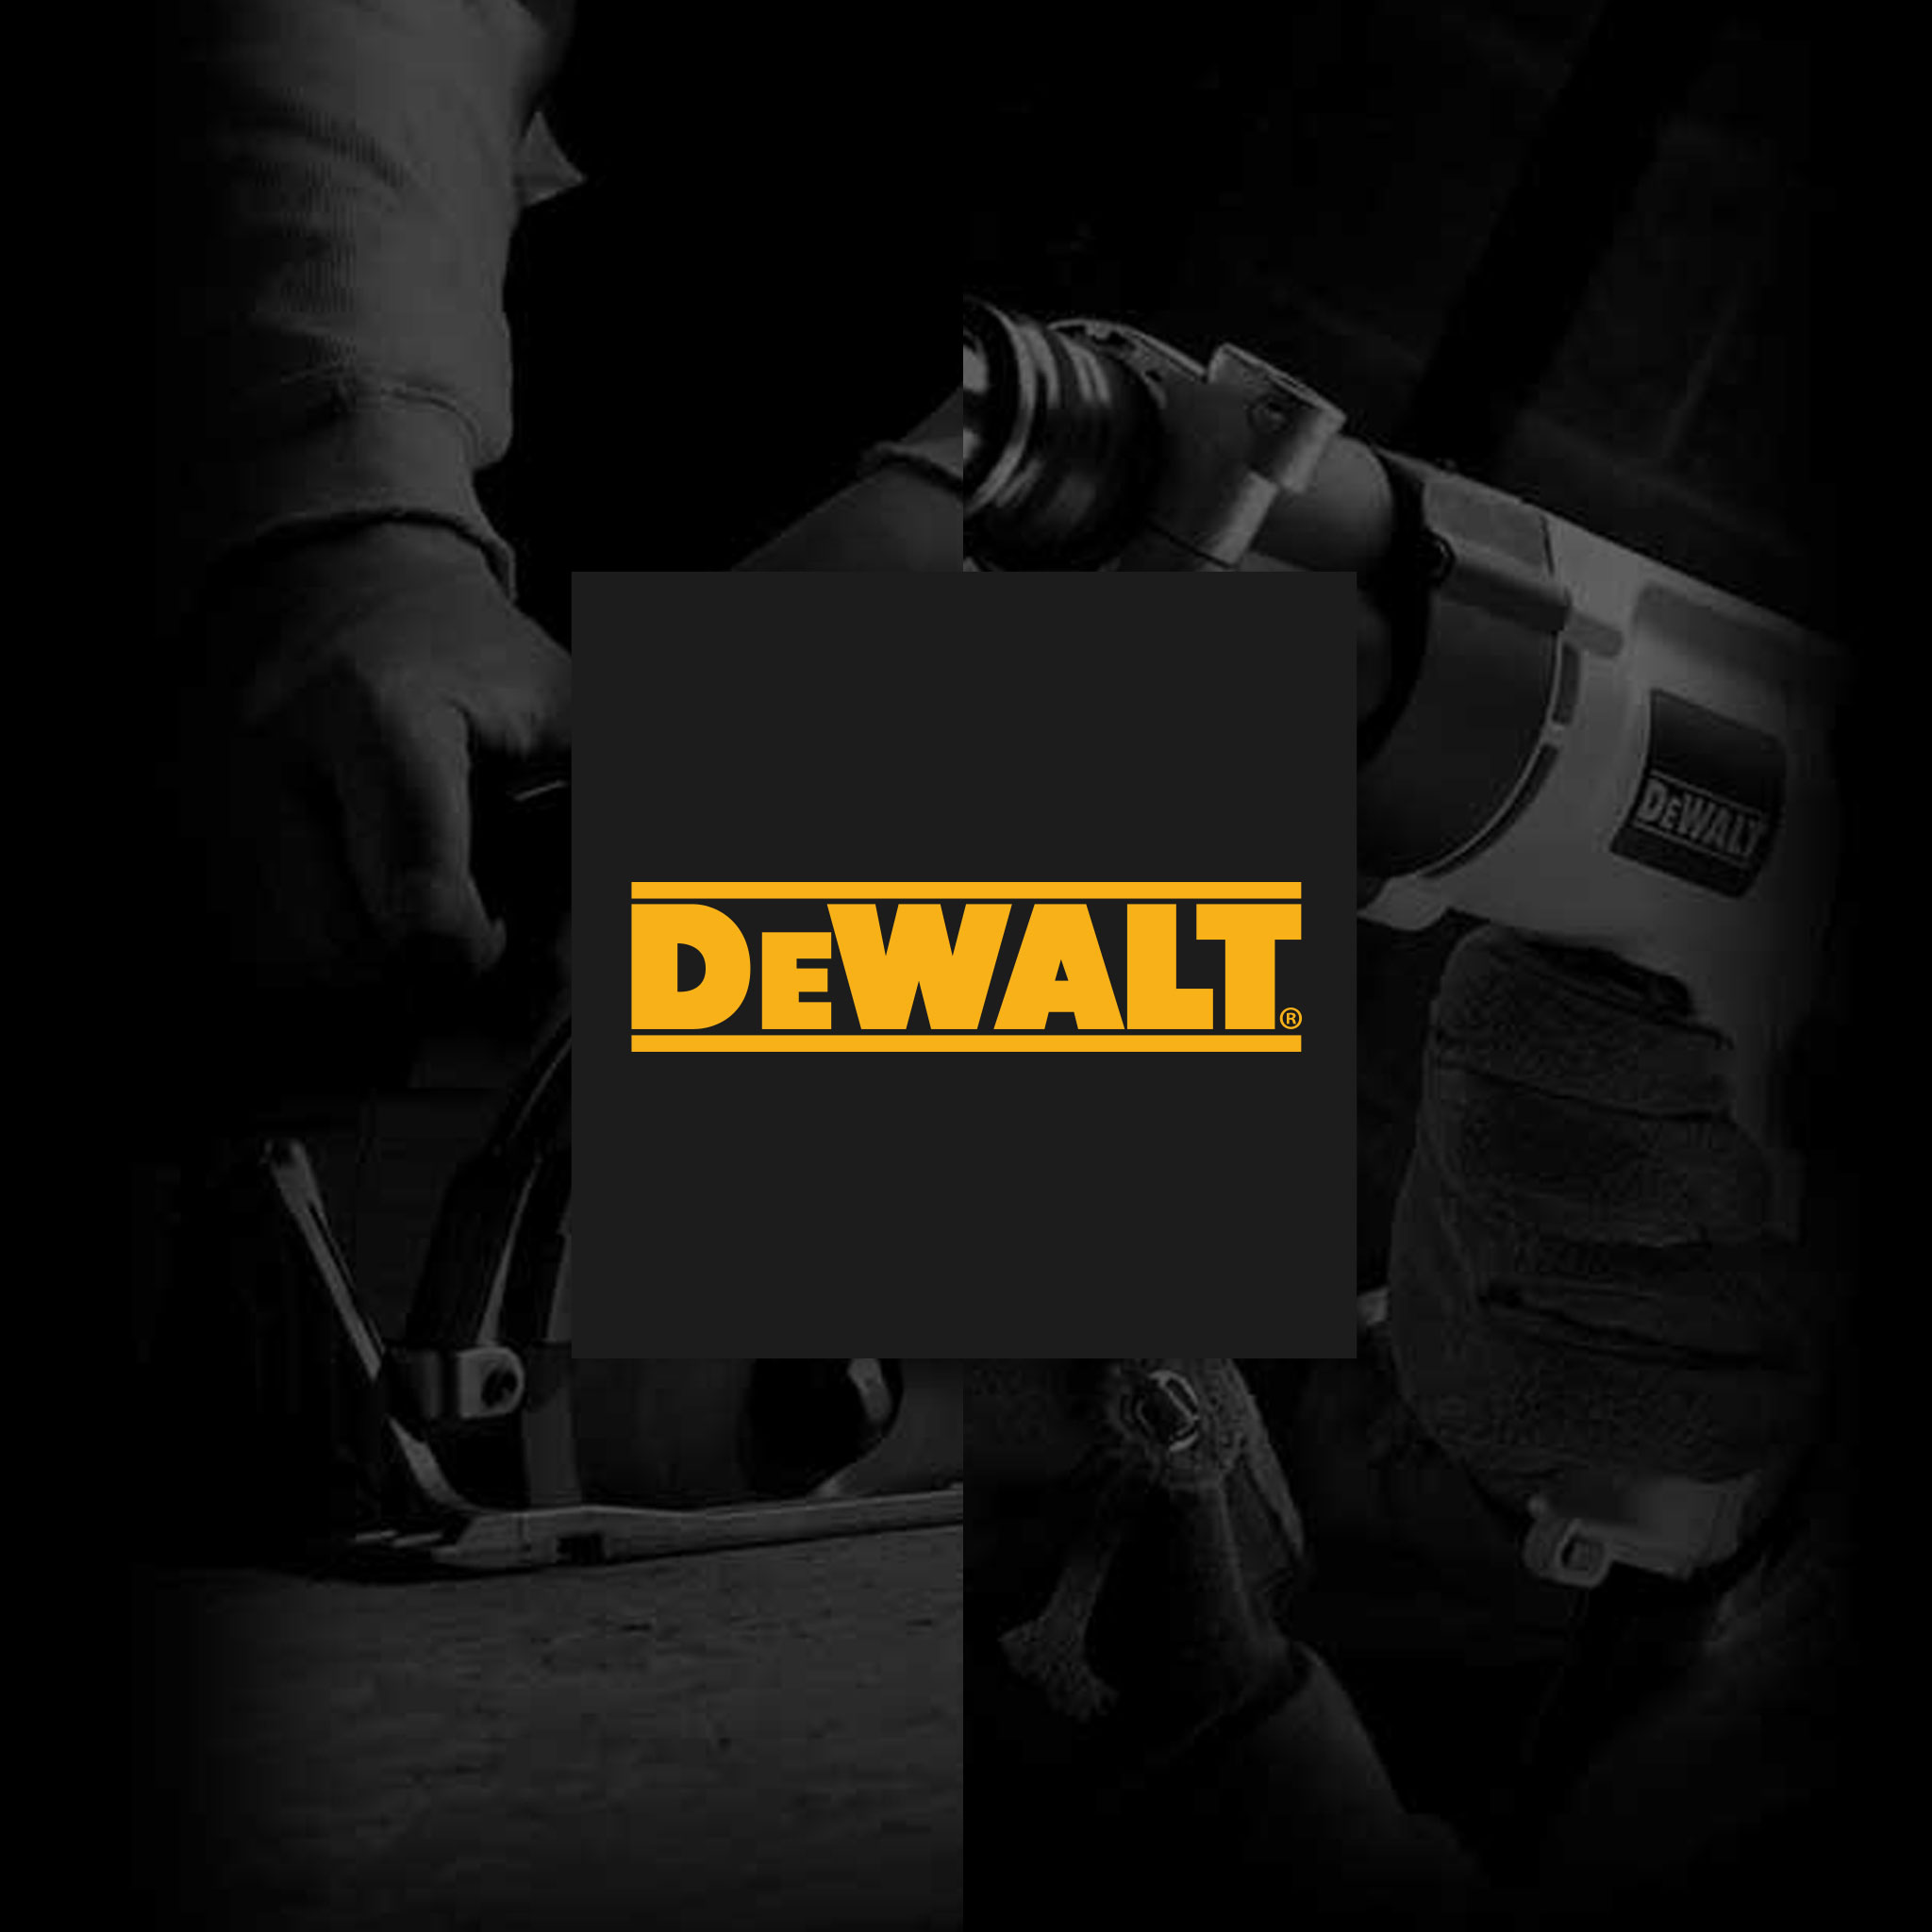 Dewalt_screen2.JPG